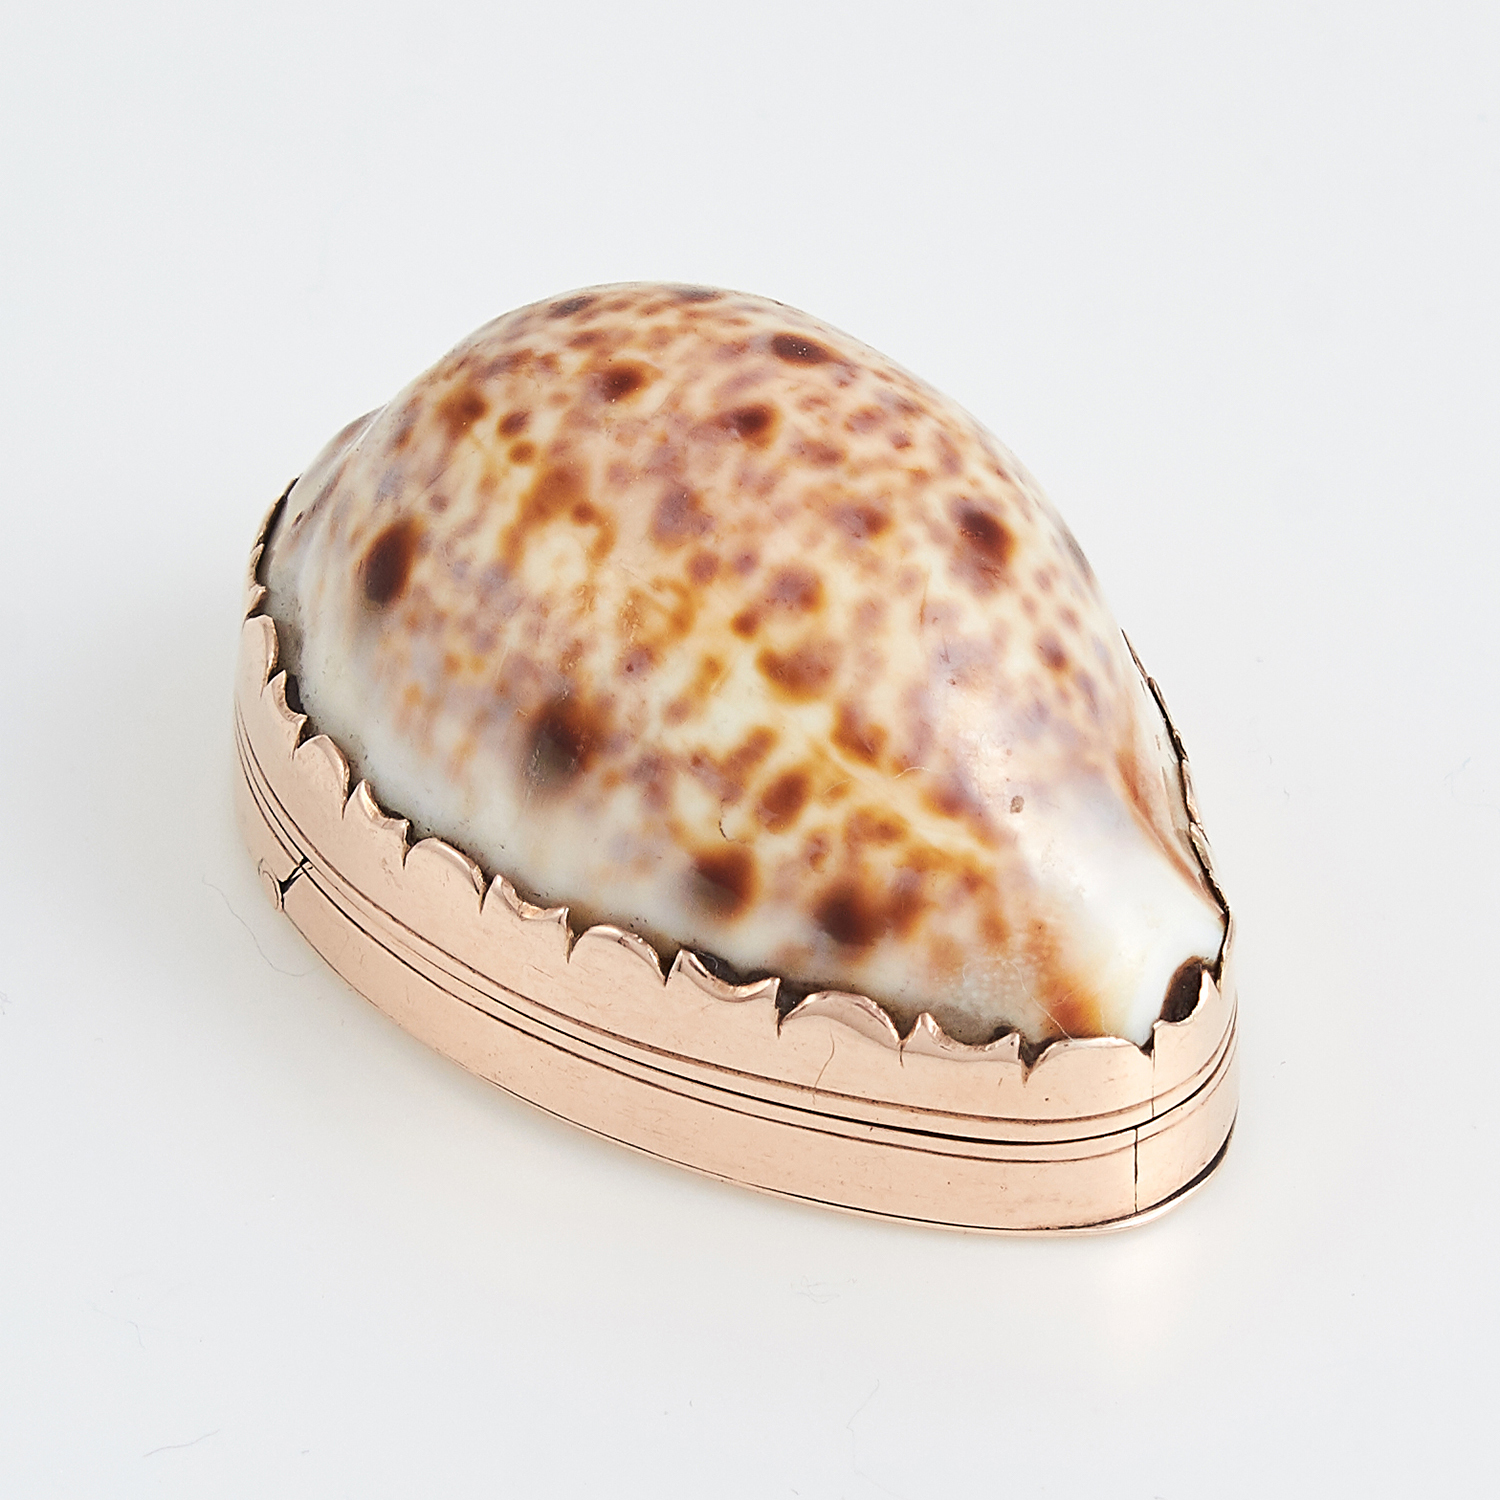 ANTIQUE PROVINCIAL IRISH GOLD COWRIE SHELL SNUFF BOX, CARDEN TERRY OF CORK CIRCA 1780 the body